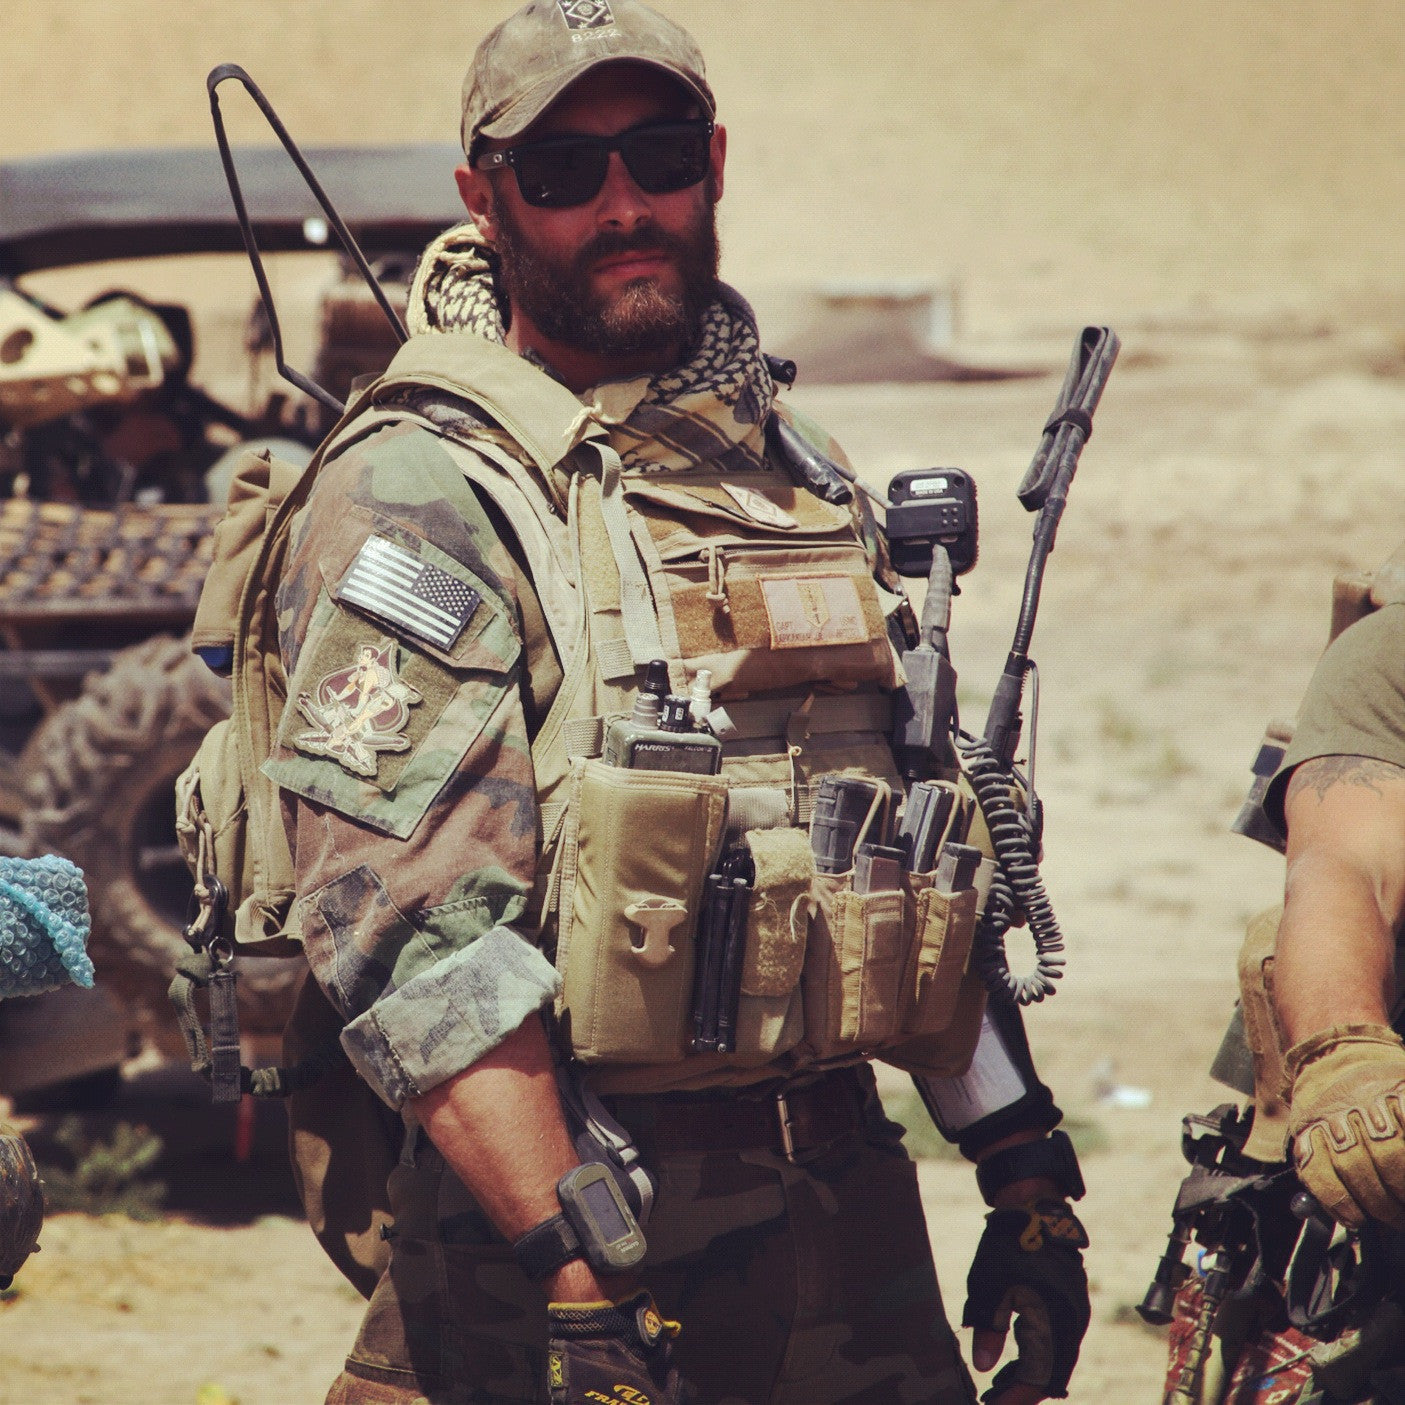 Beards in the Military: A Petition to Let You Grow - stubble + 'stache